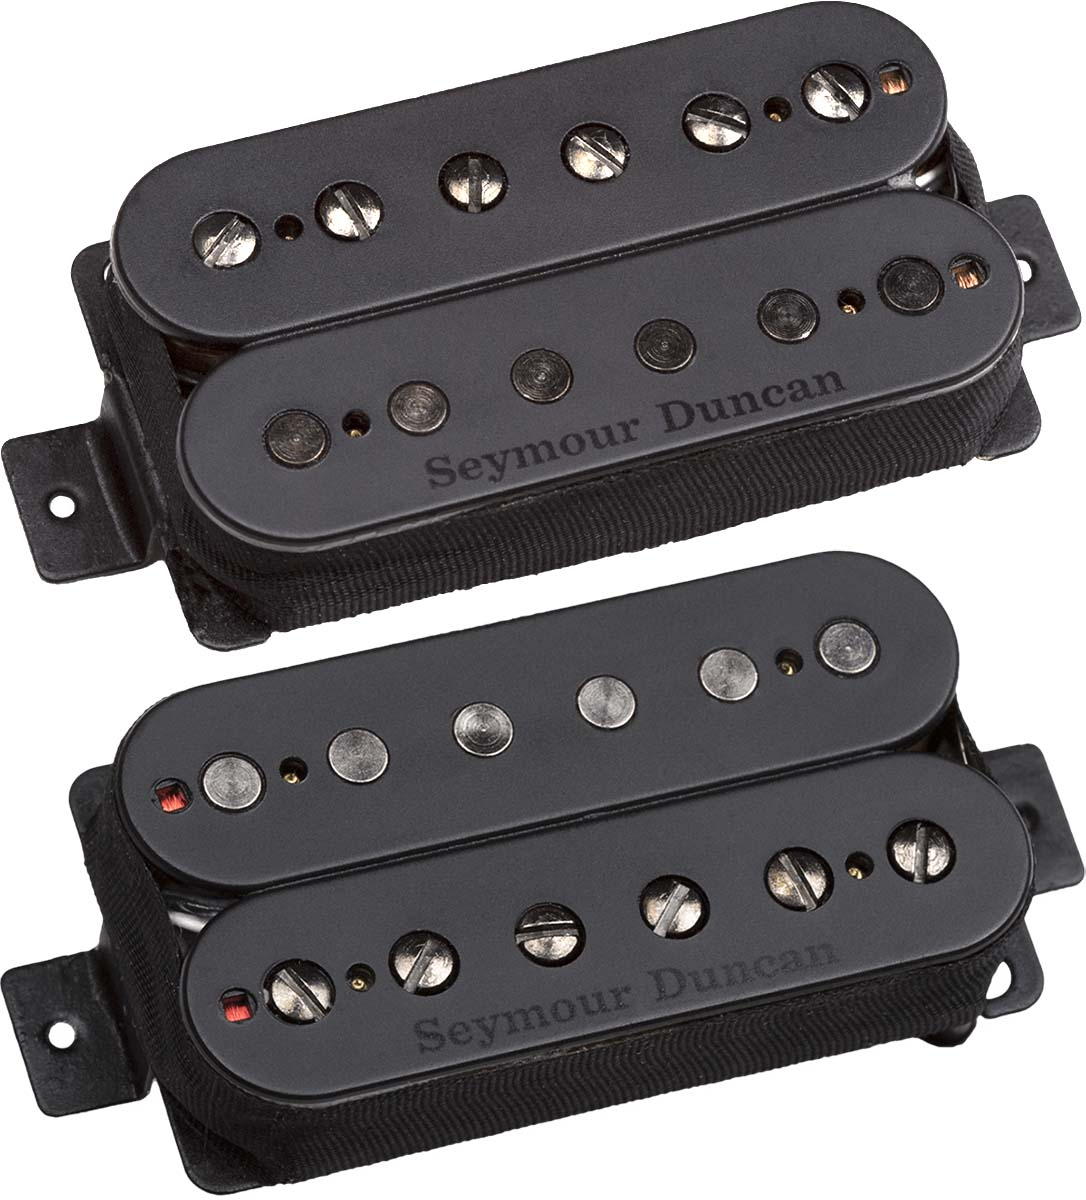 seymour duncan pegasus sentient alnico 5 humbucker neck bridge pickup set black. Black Bedroom Furniture Sets. Home Design Ideas